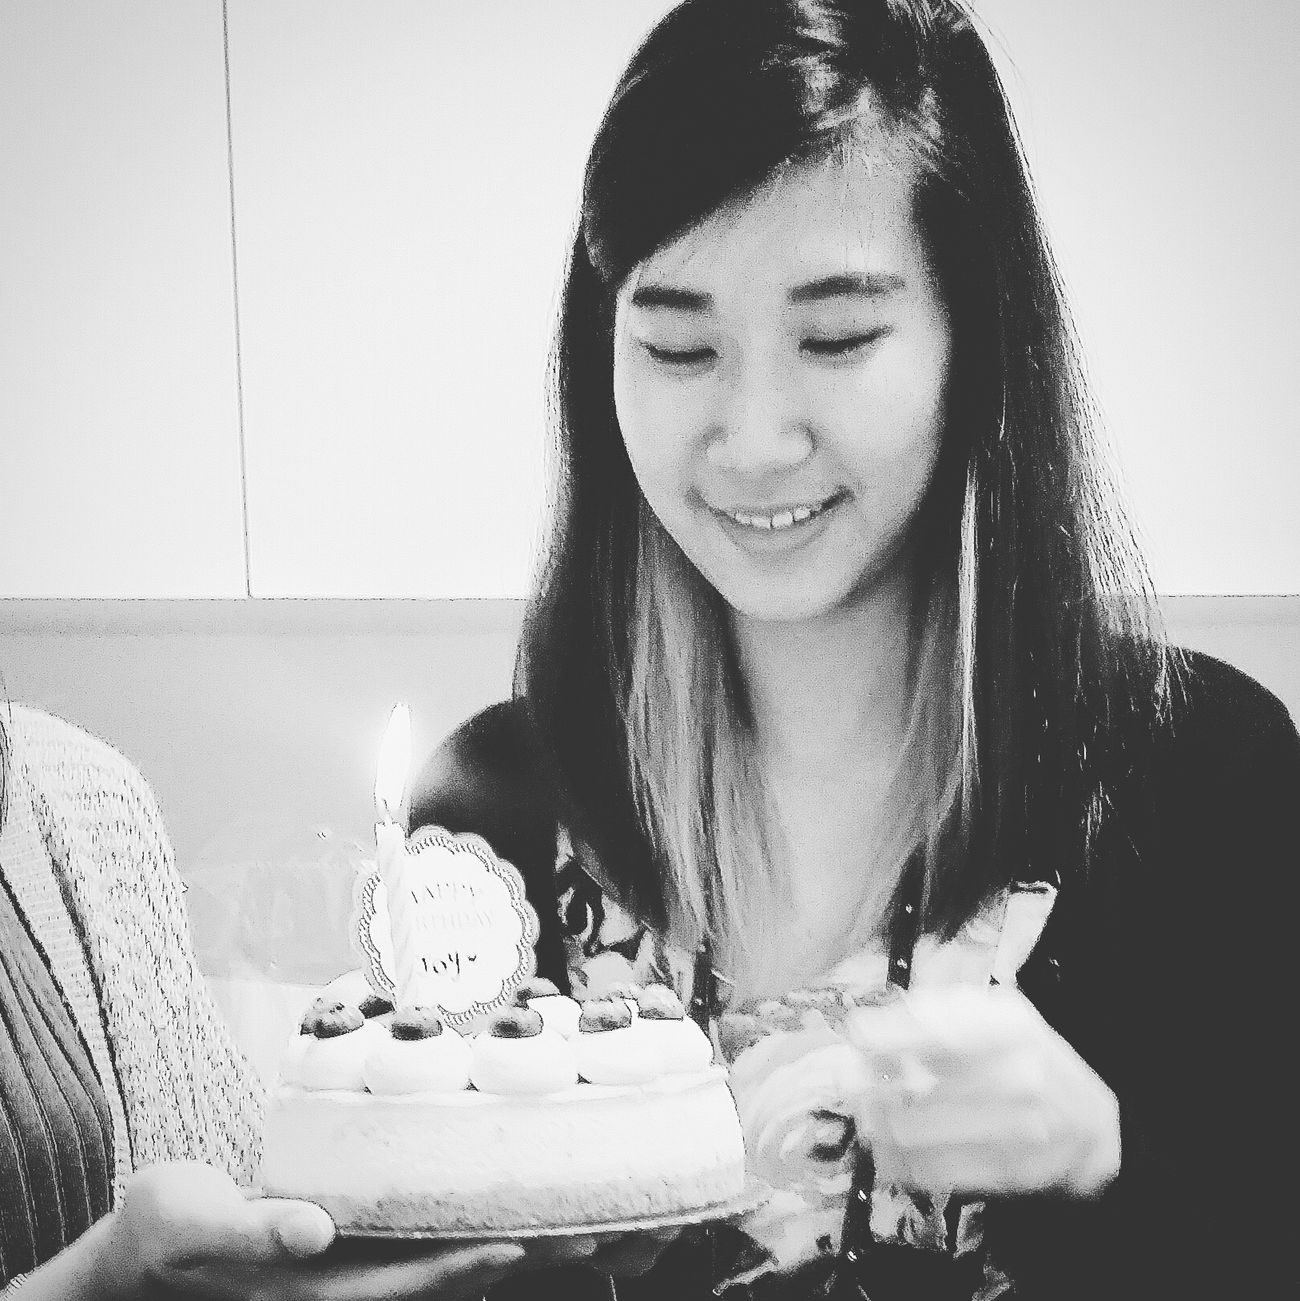 Handed a birthday cake by her bestie Joy 22 Years Old Woman Young Woman Colleague Office Birthday Celebration Cake Candle Bnw Bnw_captures Bnw_life Bnw_streetphotography Streetphotography EyeEm Gallery Eyeem Photography EyeEm Bnw Singapore